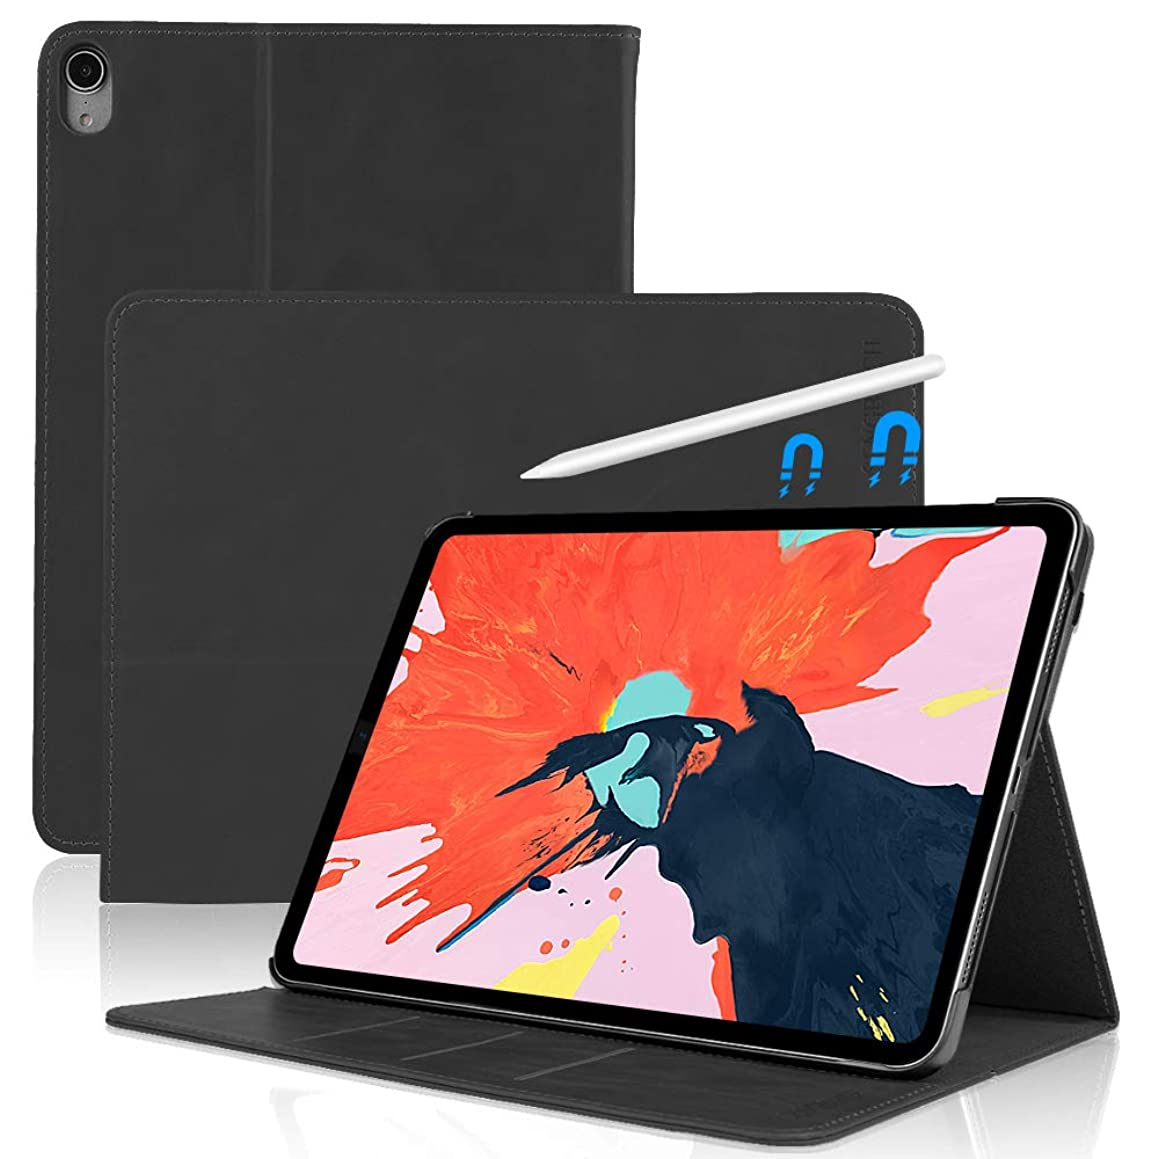 SENGBIRCH Leather Case Compatible for iPad Pro 11 - Leather Smart Cover Protective - Folio Flip Stand with Magnetic - Auto Sleep/Wake - iPad Pro 11 Case (Black)